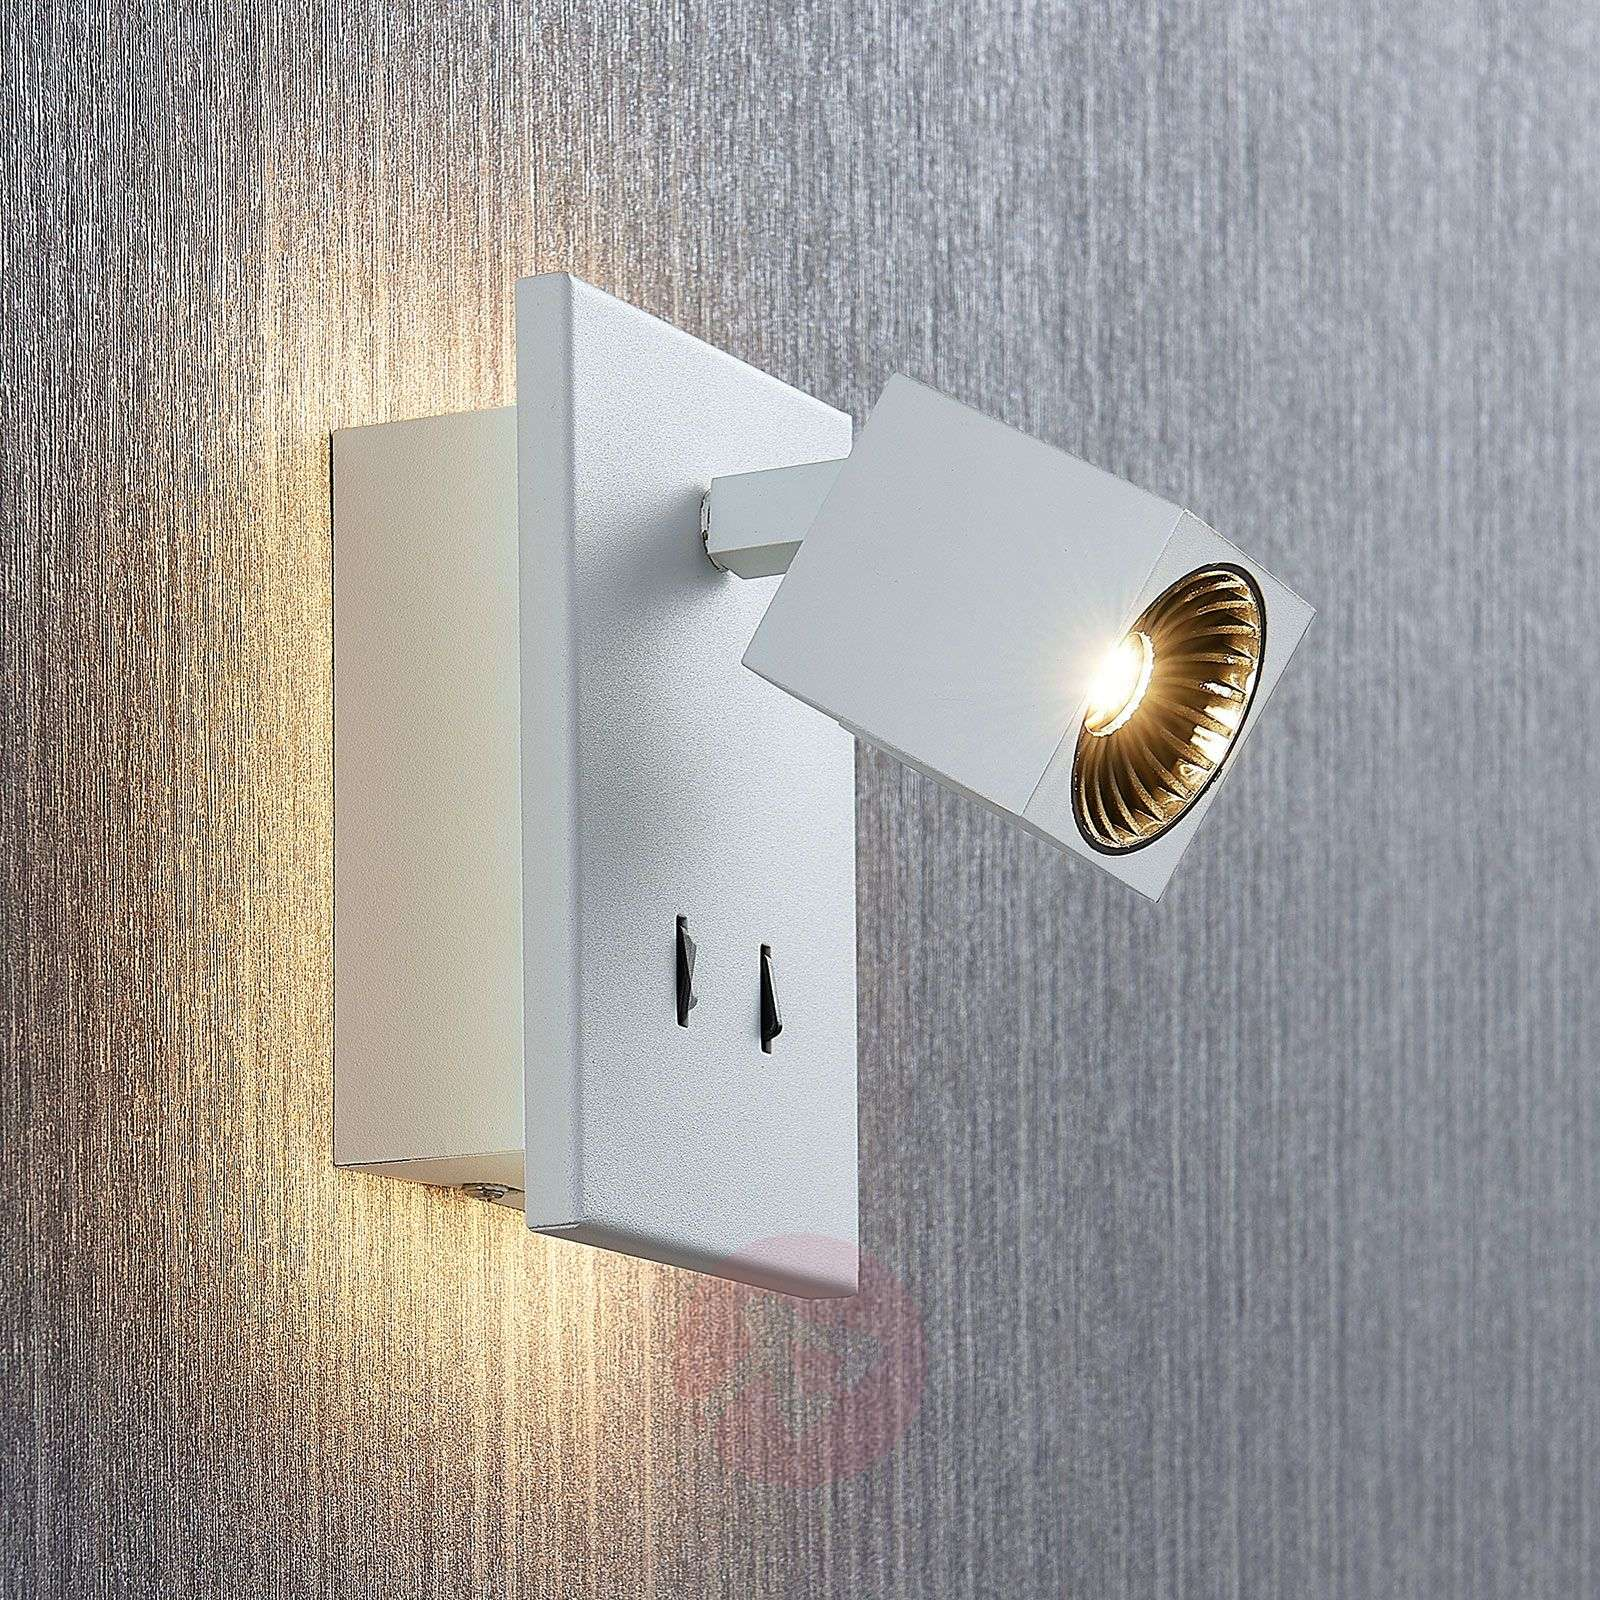 Spot mural LED Taly, éclairage direct-indirect-8032163-02